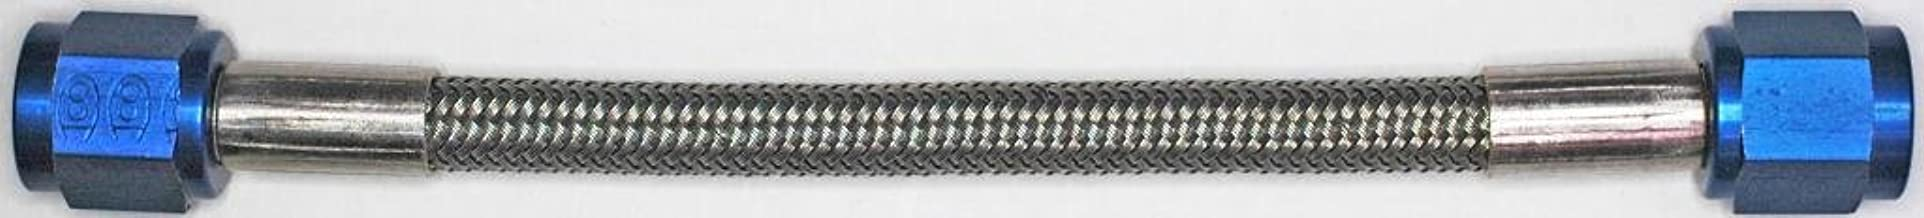 AN-4 72 In. Long Stainless Steel Braid Teflon Hose/blue straights NC